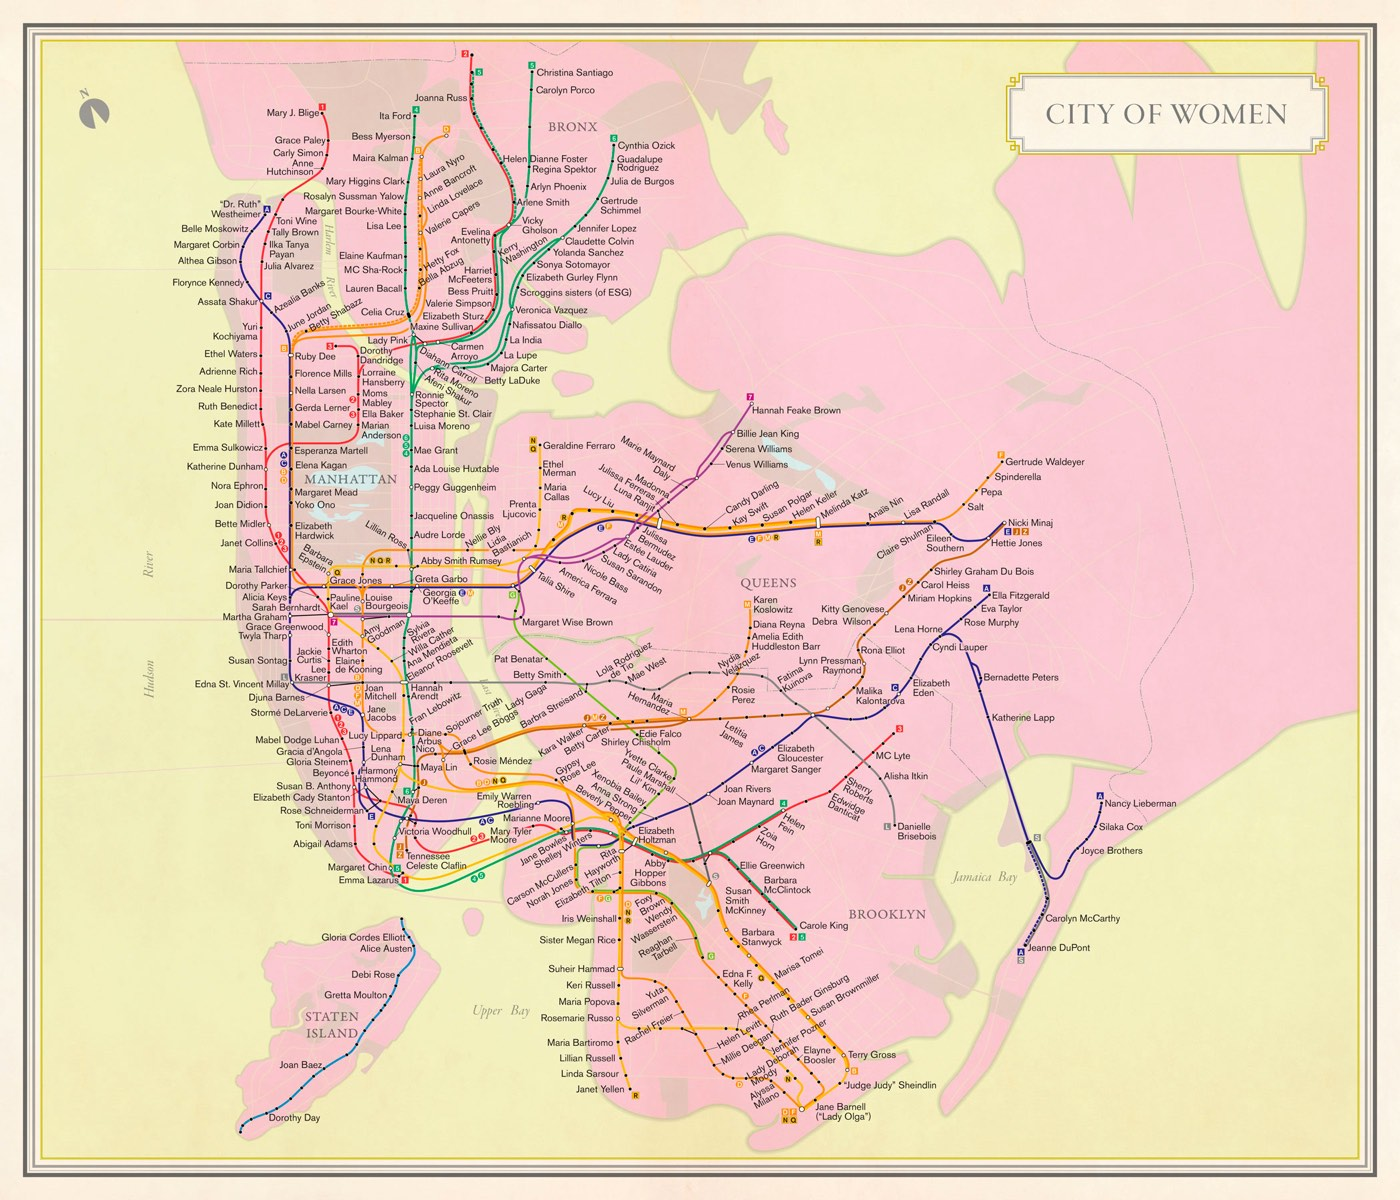 City Of Women Subway Map